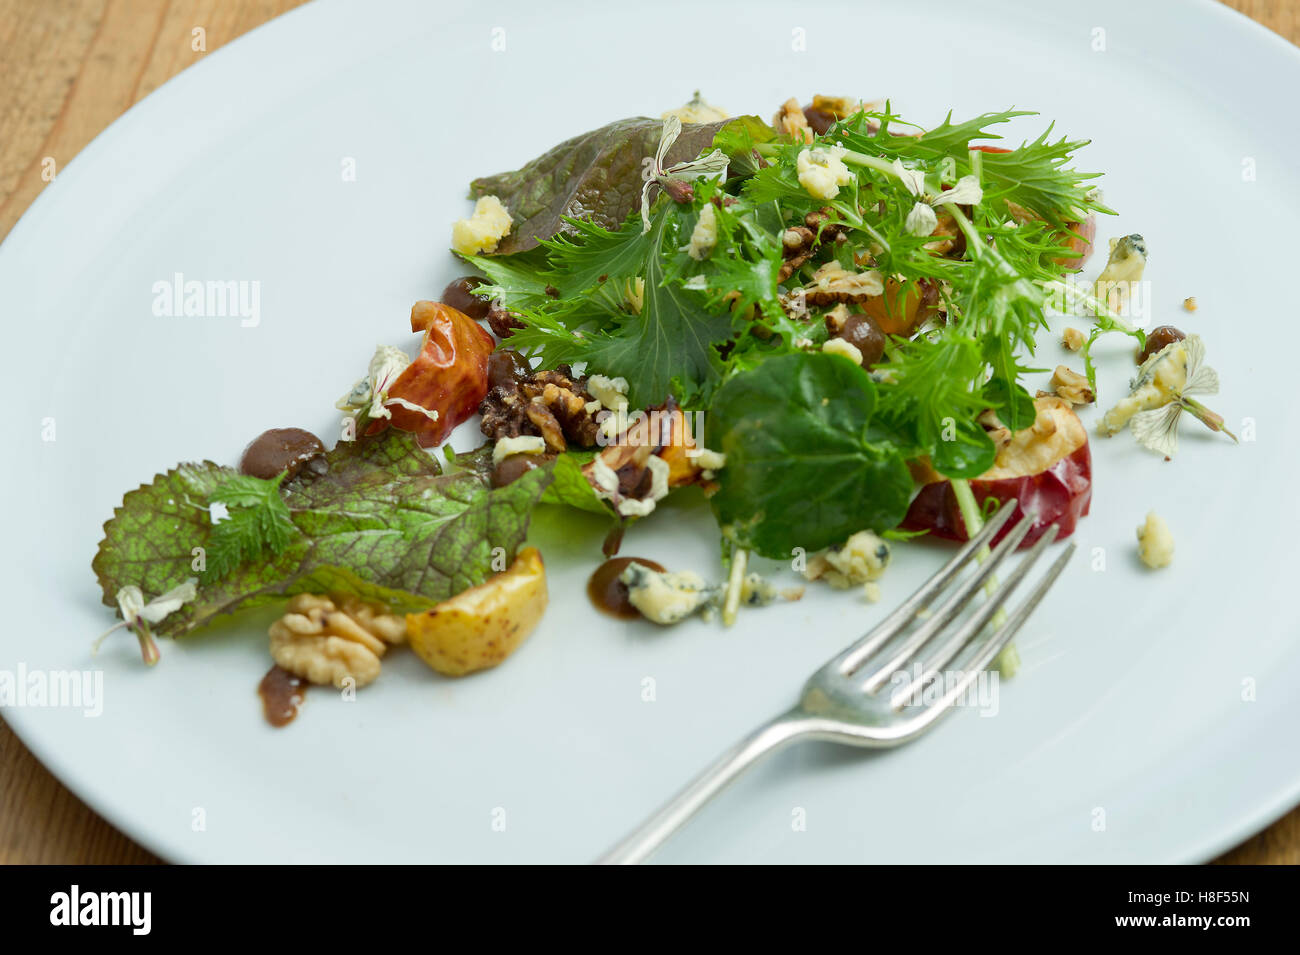 Ethicurian superfood salad - Stock Image